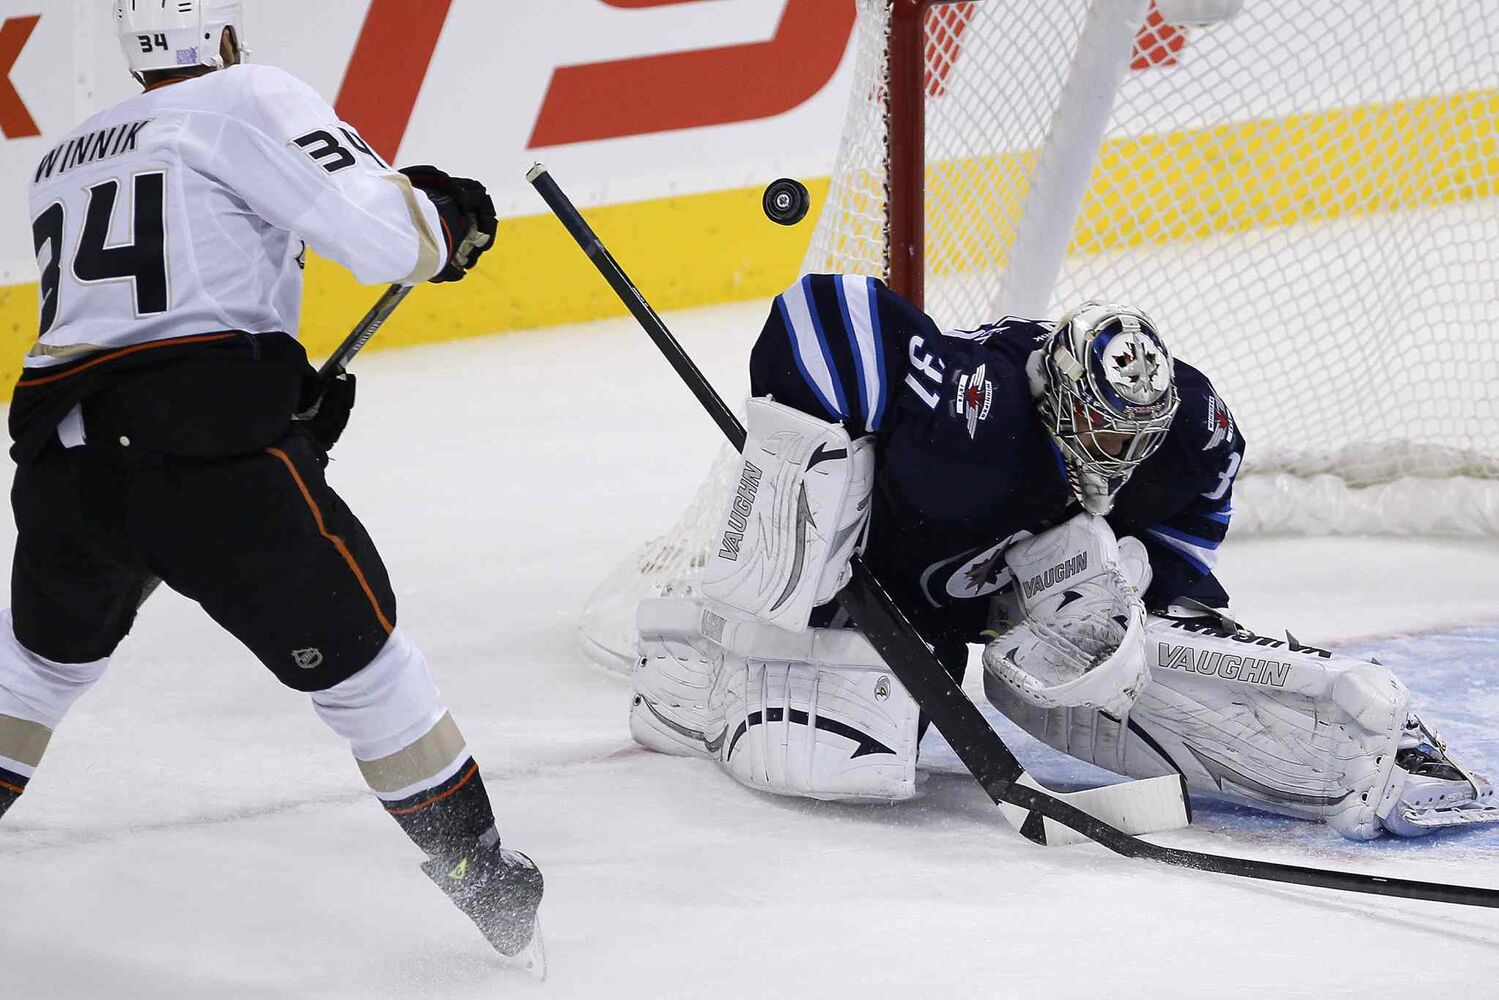 Winnipeg Jets' goaltender Ondrej Pavelec gets his shoulder on a shot from Anaheim Ducks' Daniel Winnik during the first period. (JOHN WOODS / WINNIPEG FREE PRESS)